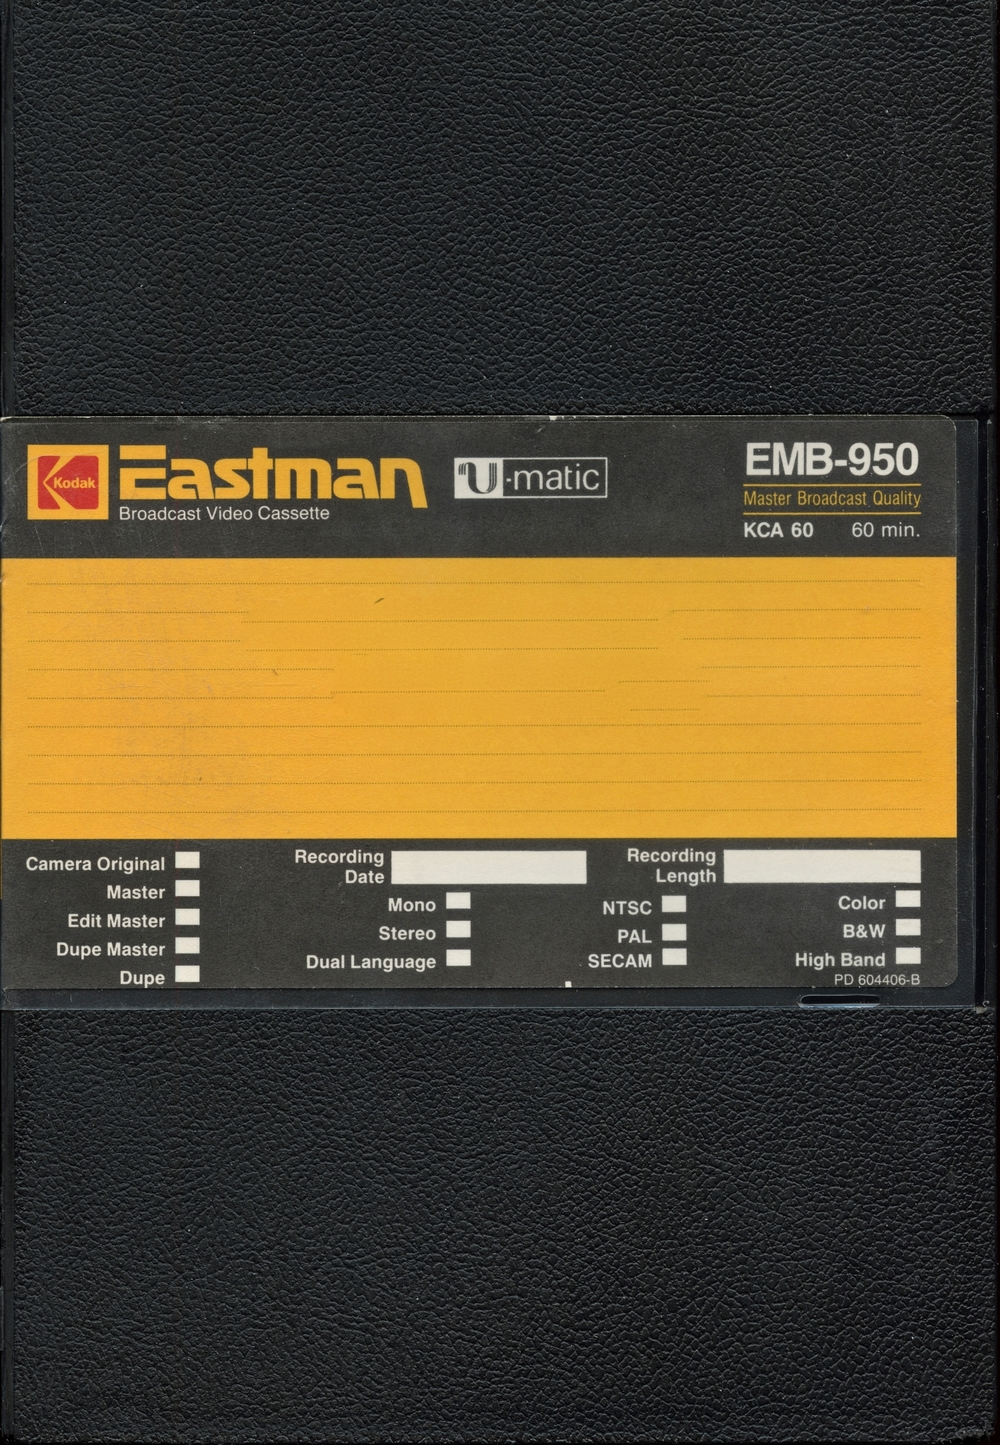 Eastman KCA-60 Umatic